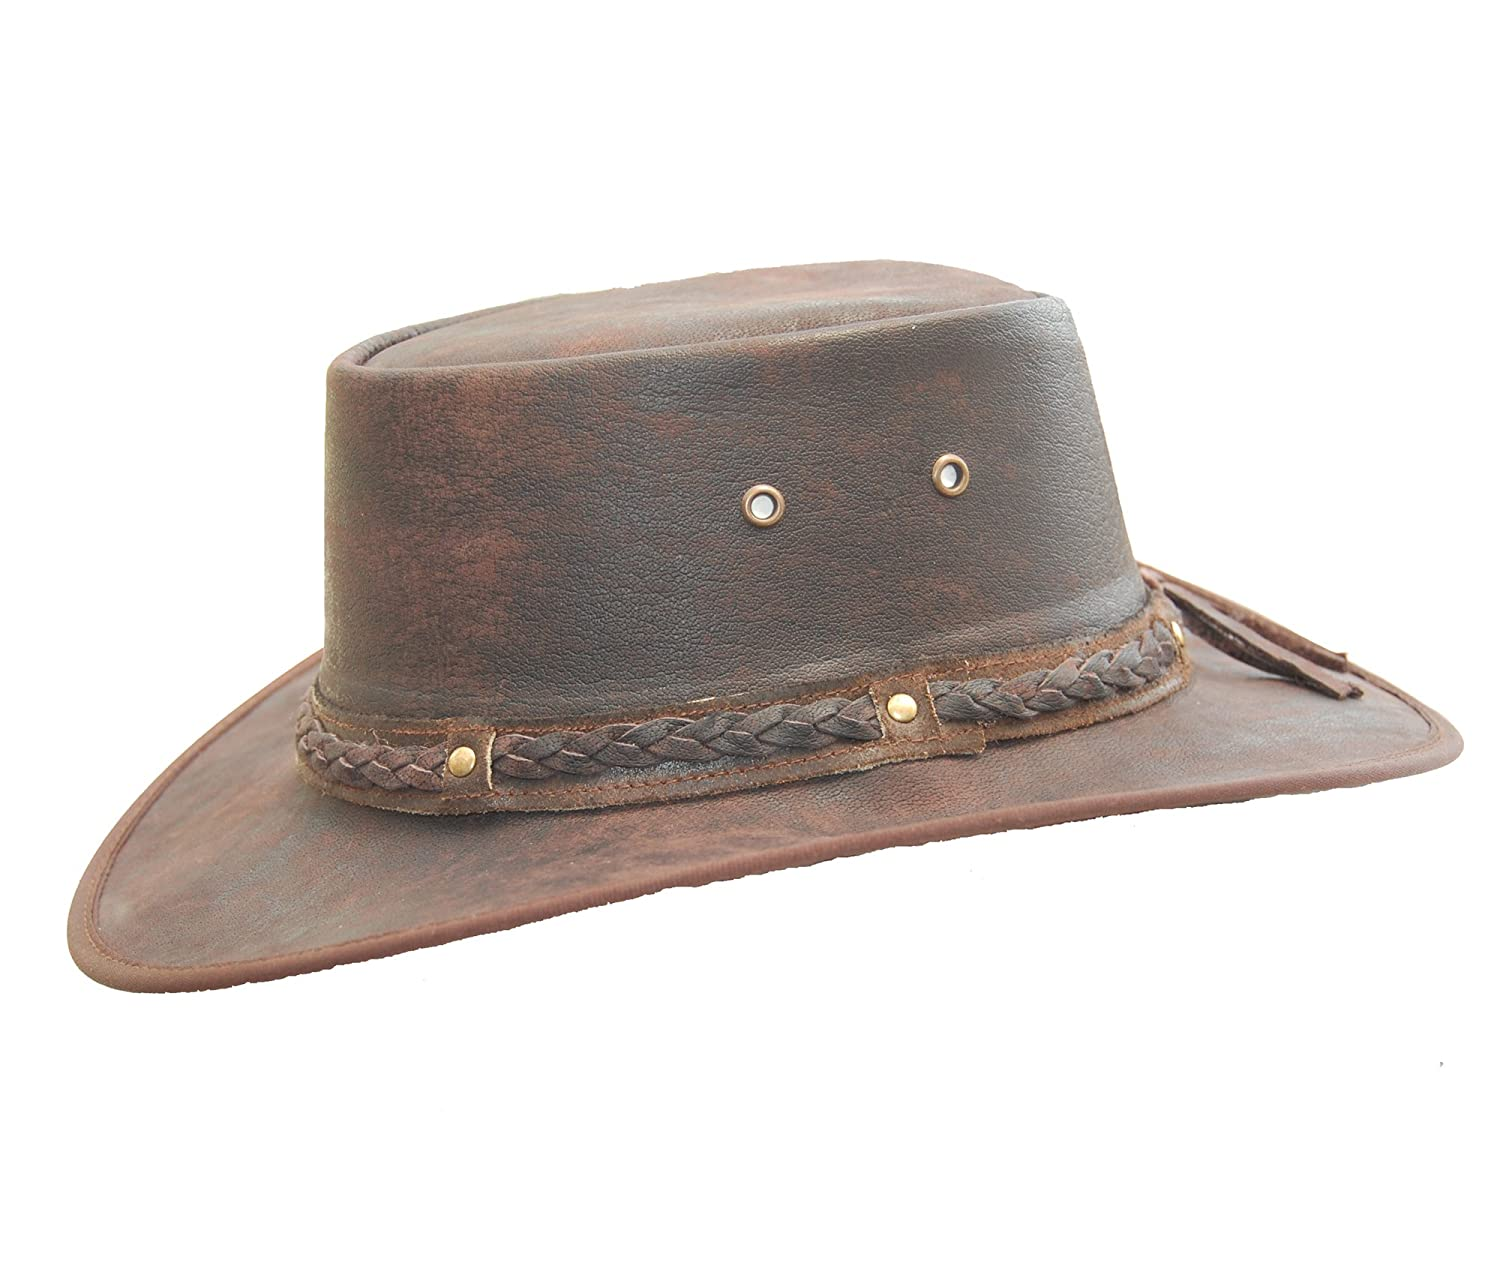 Lesa Collection Real Leather Foldaway Crushable Australian-Style Bush Hat